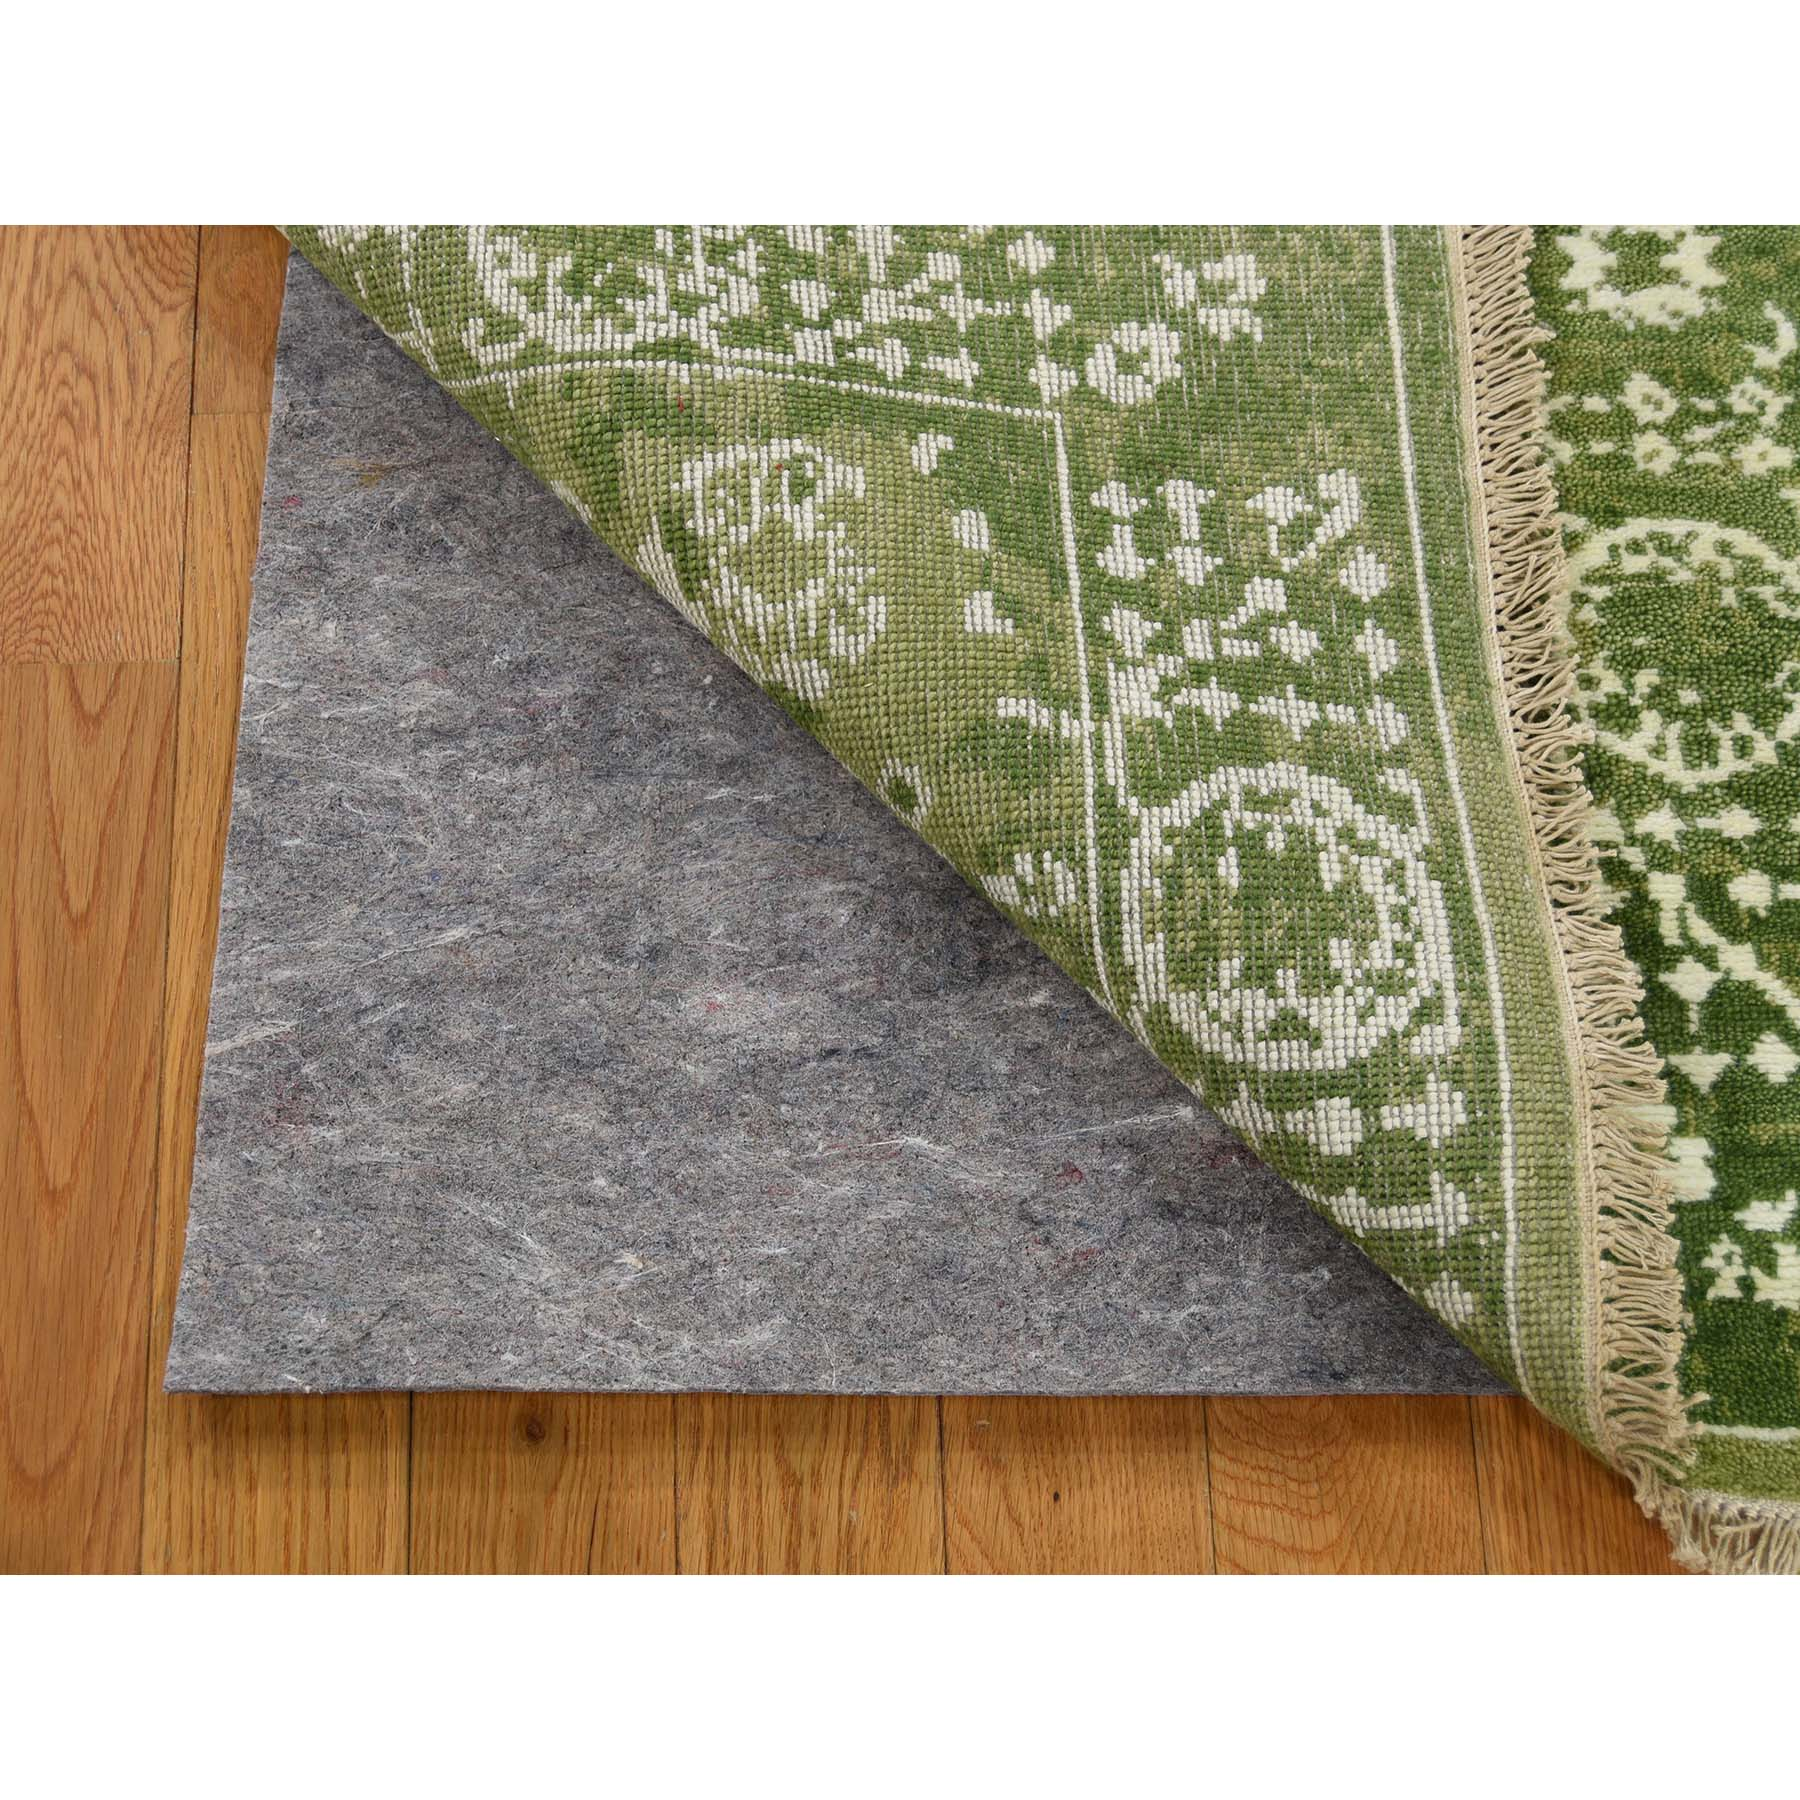 """2'1""""x3'1"""" Tabriz Wool and Silk Tone on Tone Hand-Knotted Oriental Rug"""